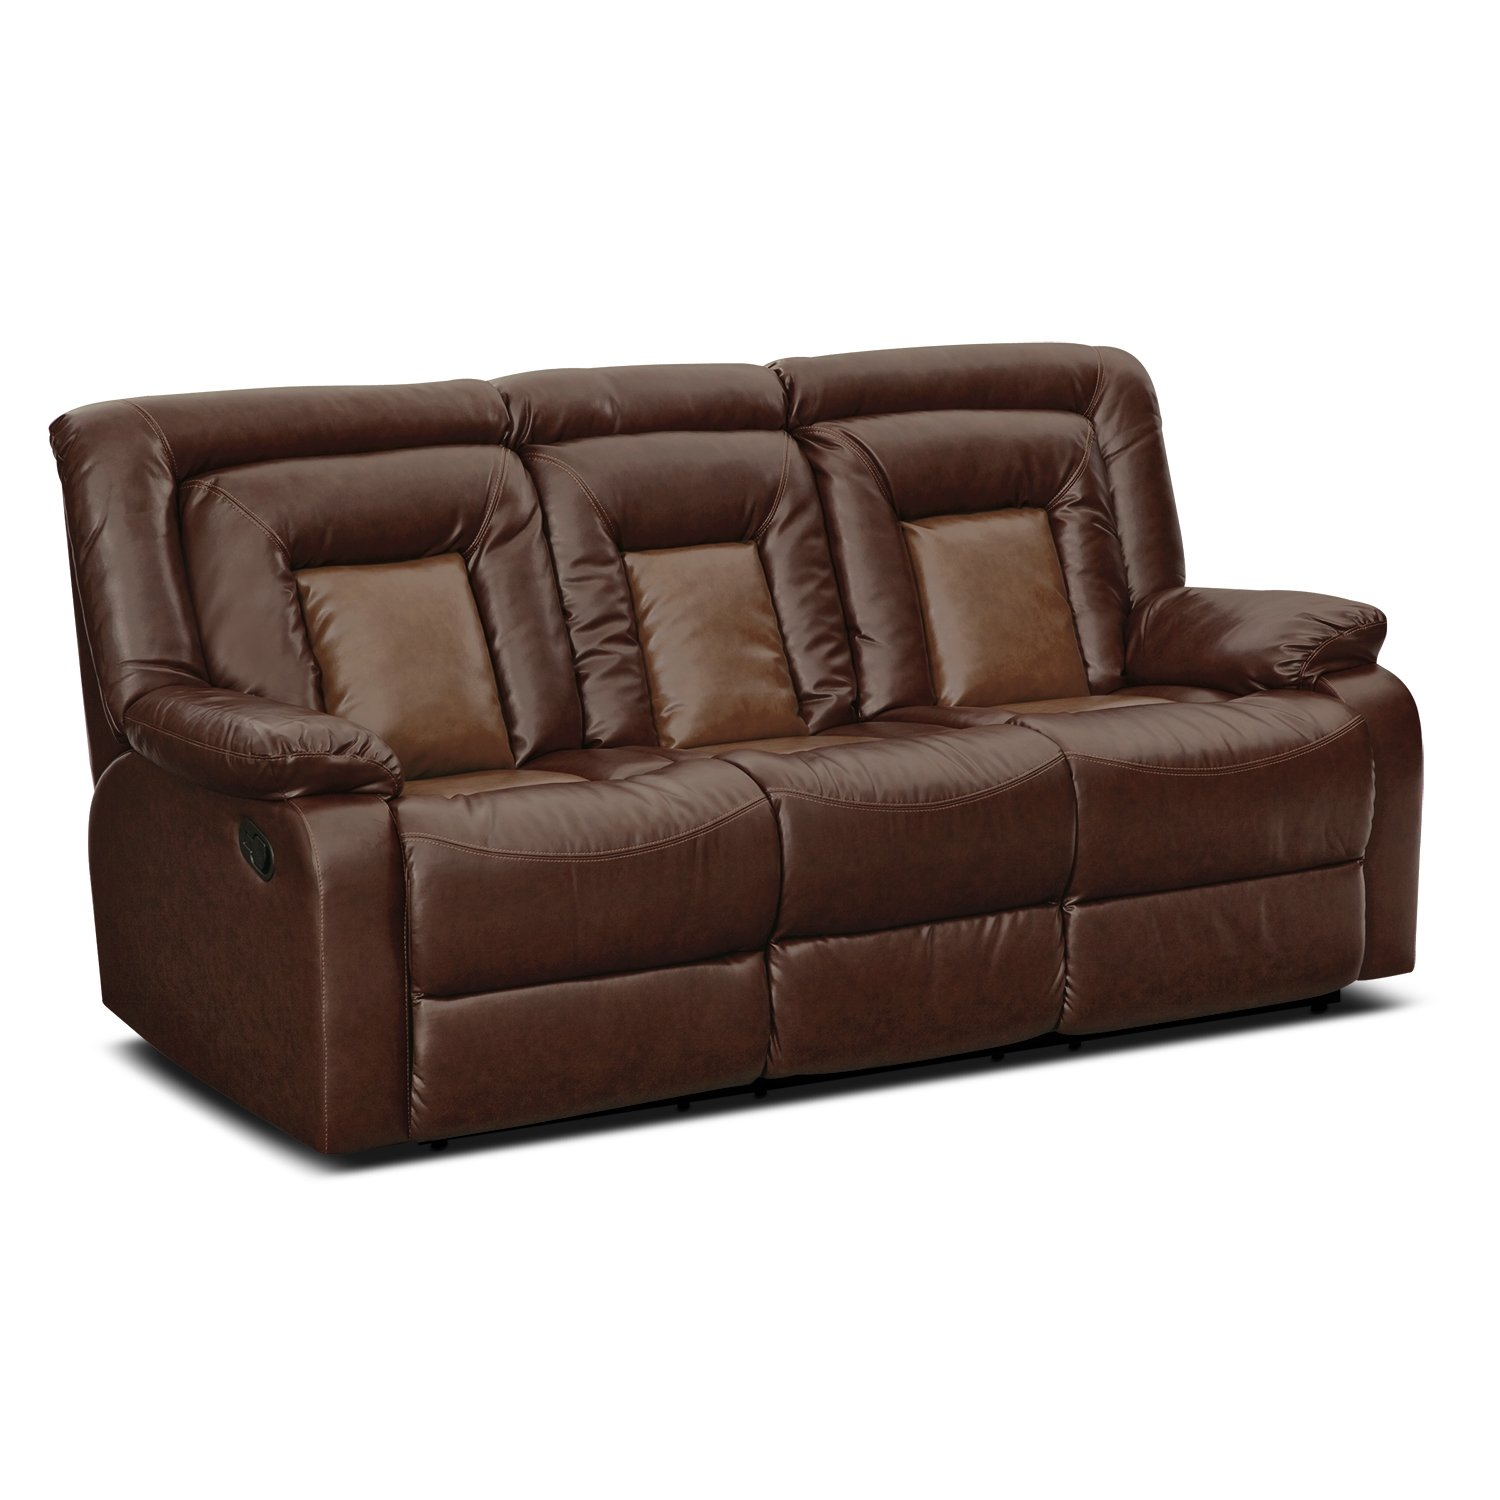 Amazoncom Roundhill Furniture Kmax 2Toned PU Dual Reclining